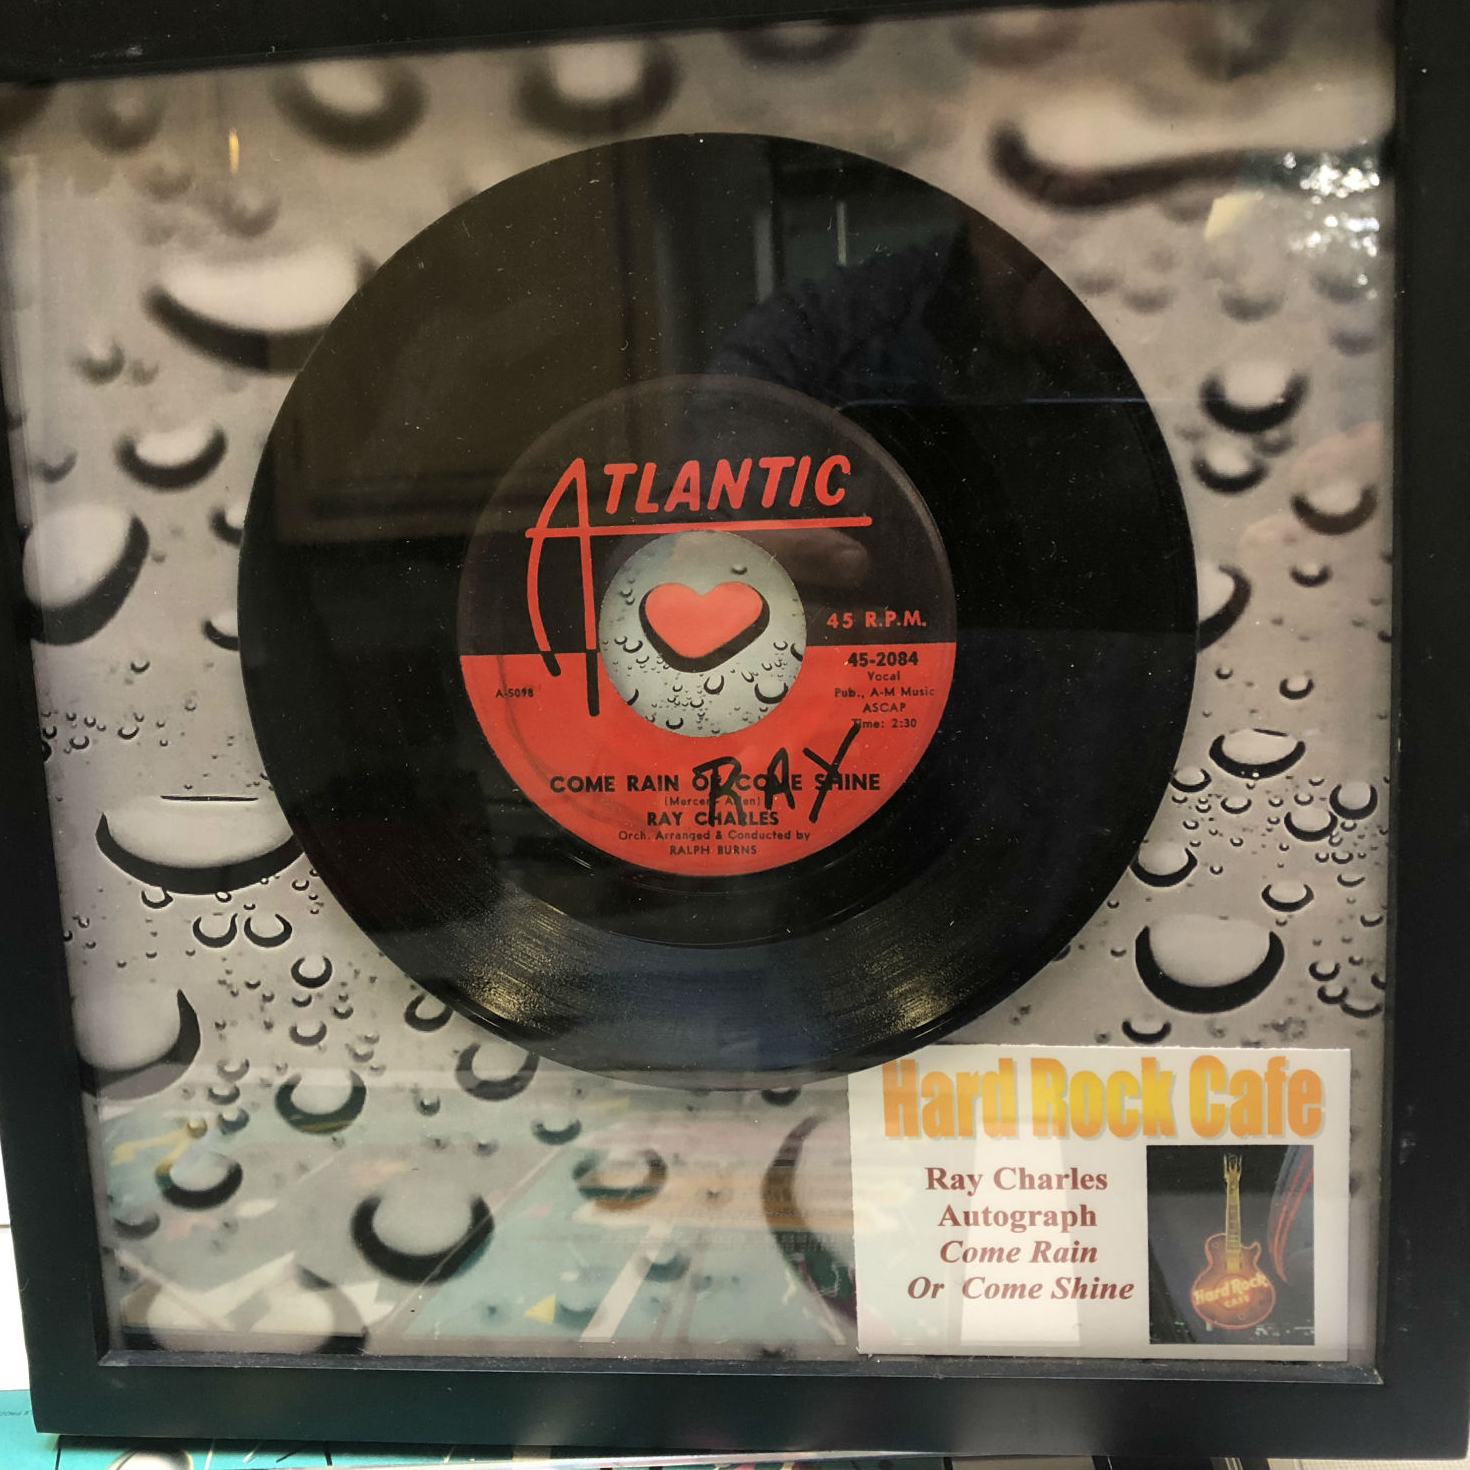 Extremely rare framed and autographed Ray Charles autograph! From Hard Rock Café